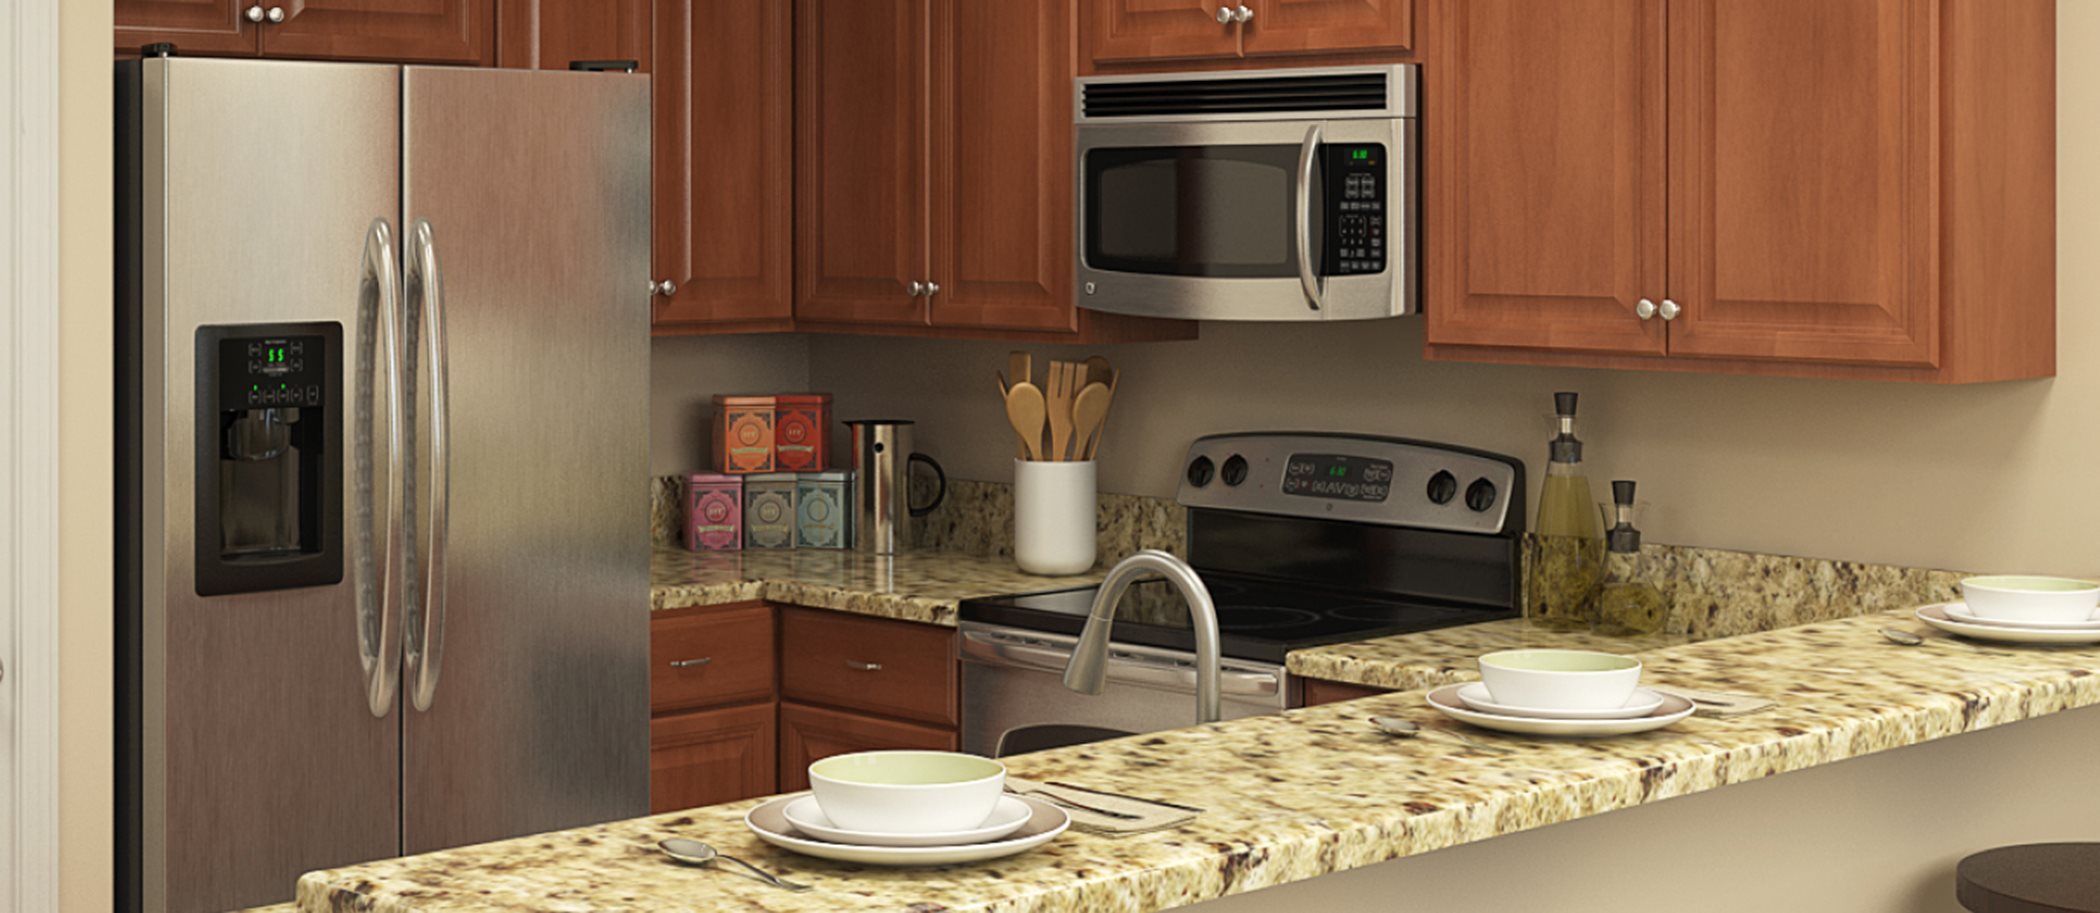 Willow - Townhomes - Palermo Kitchen